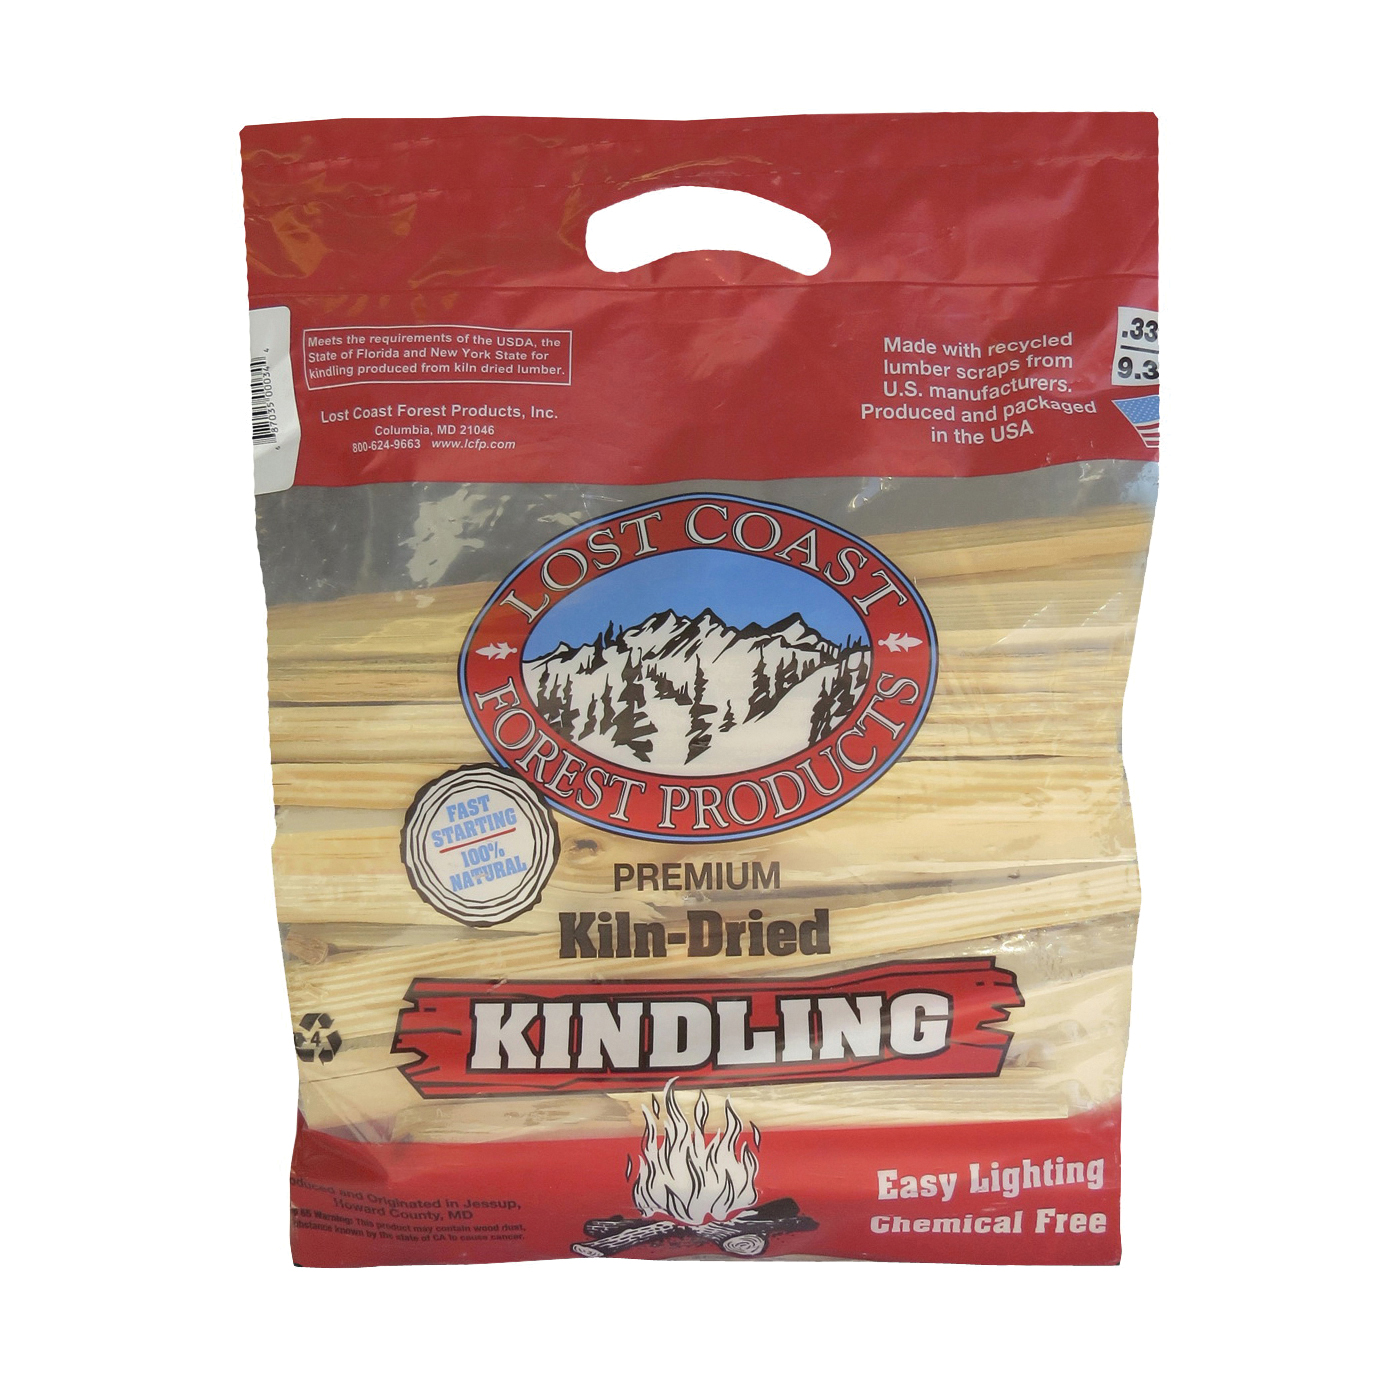 Picture of LOST COAST FOREST PRODUCTS 00033 Seasoned Kindling Bag, Bag